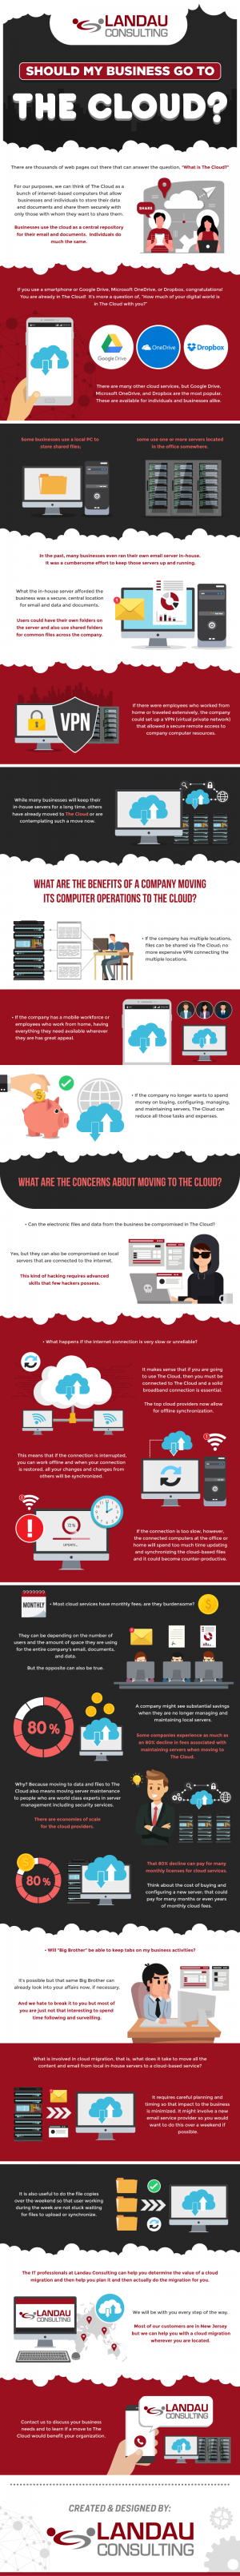 Should my business go to The Cloud?